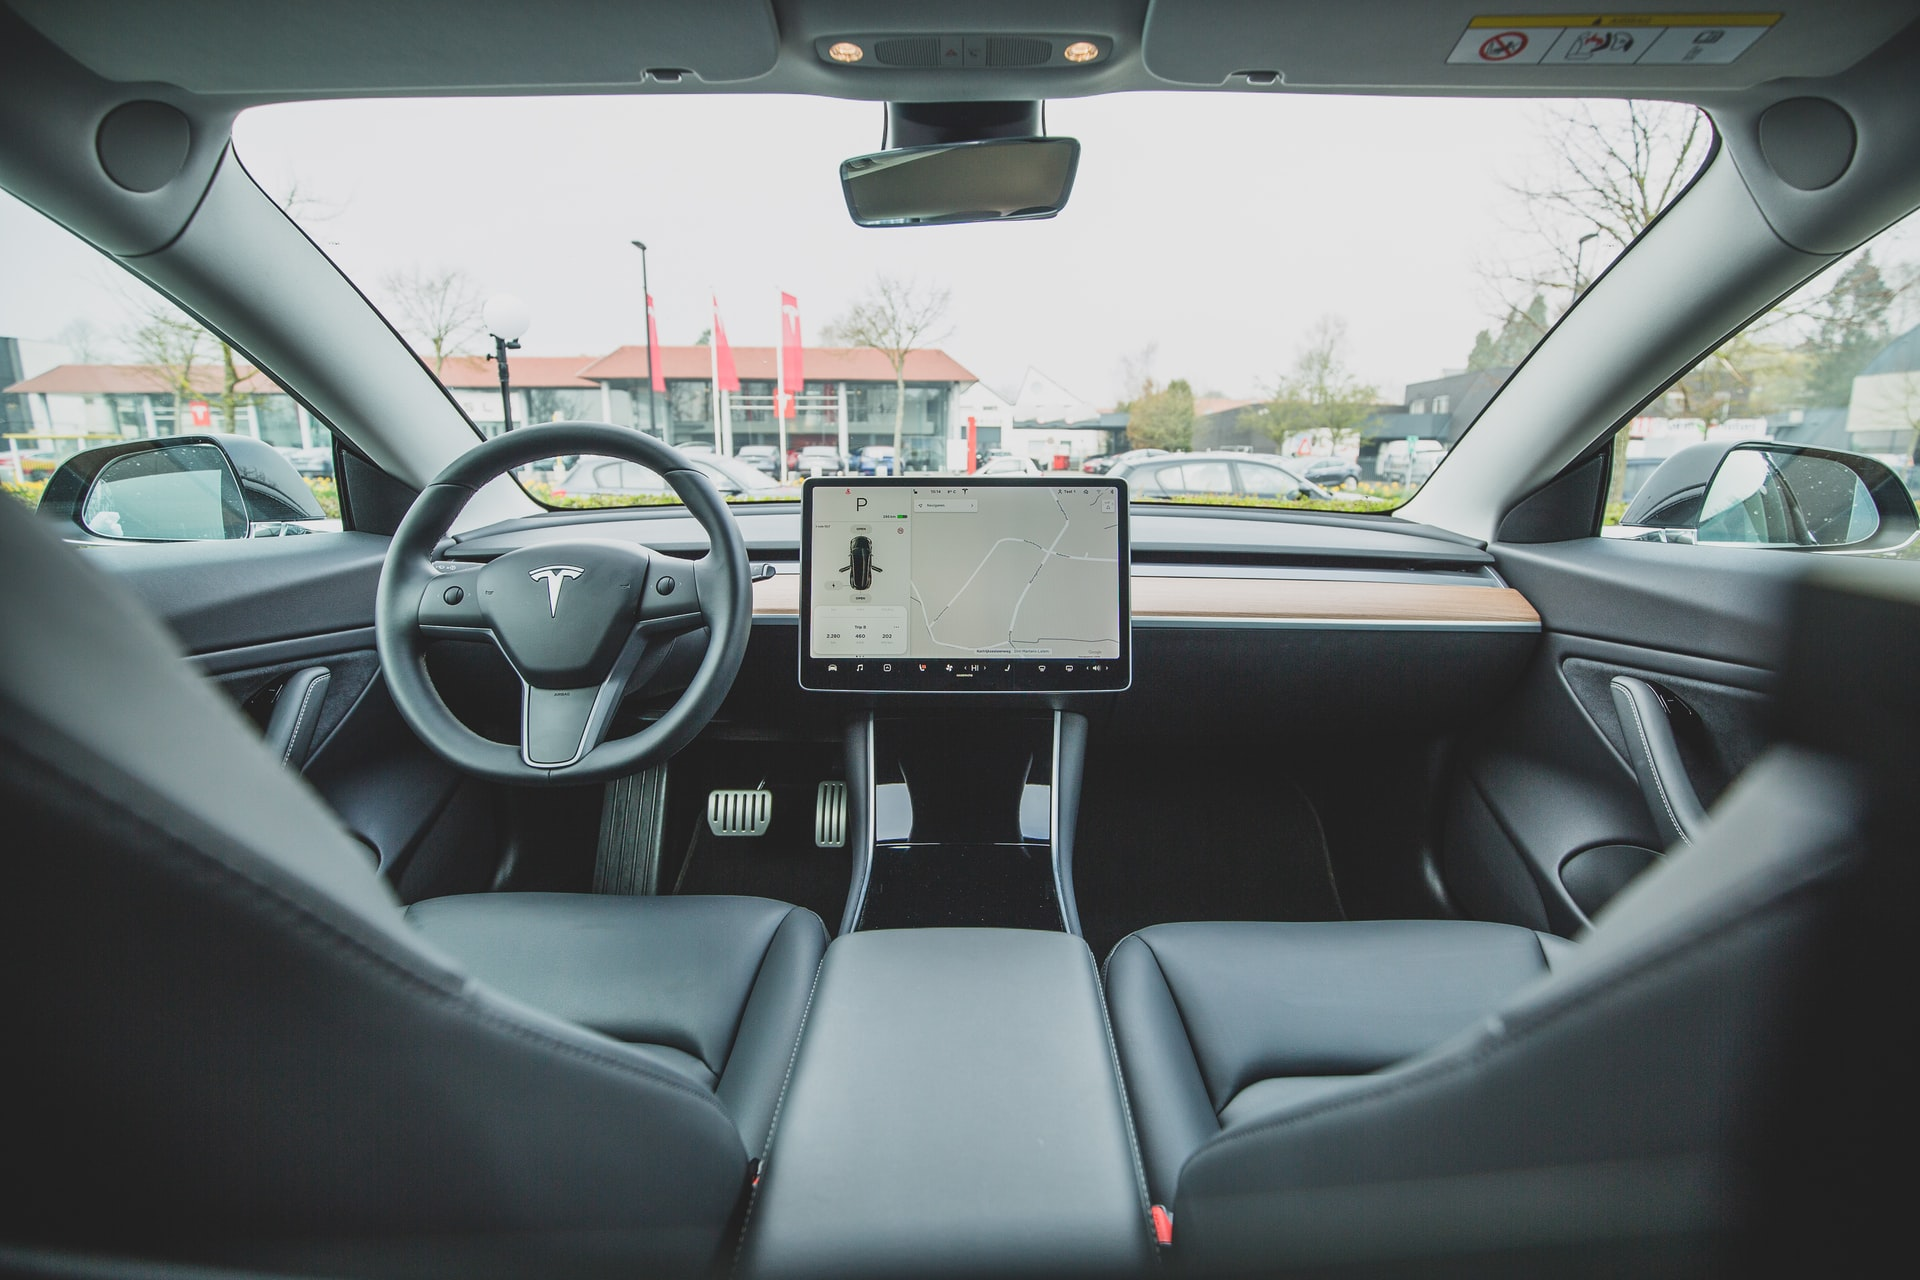 How car technology can actually lead to more accidents